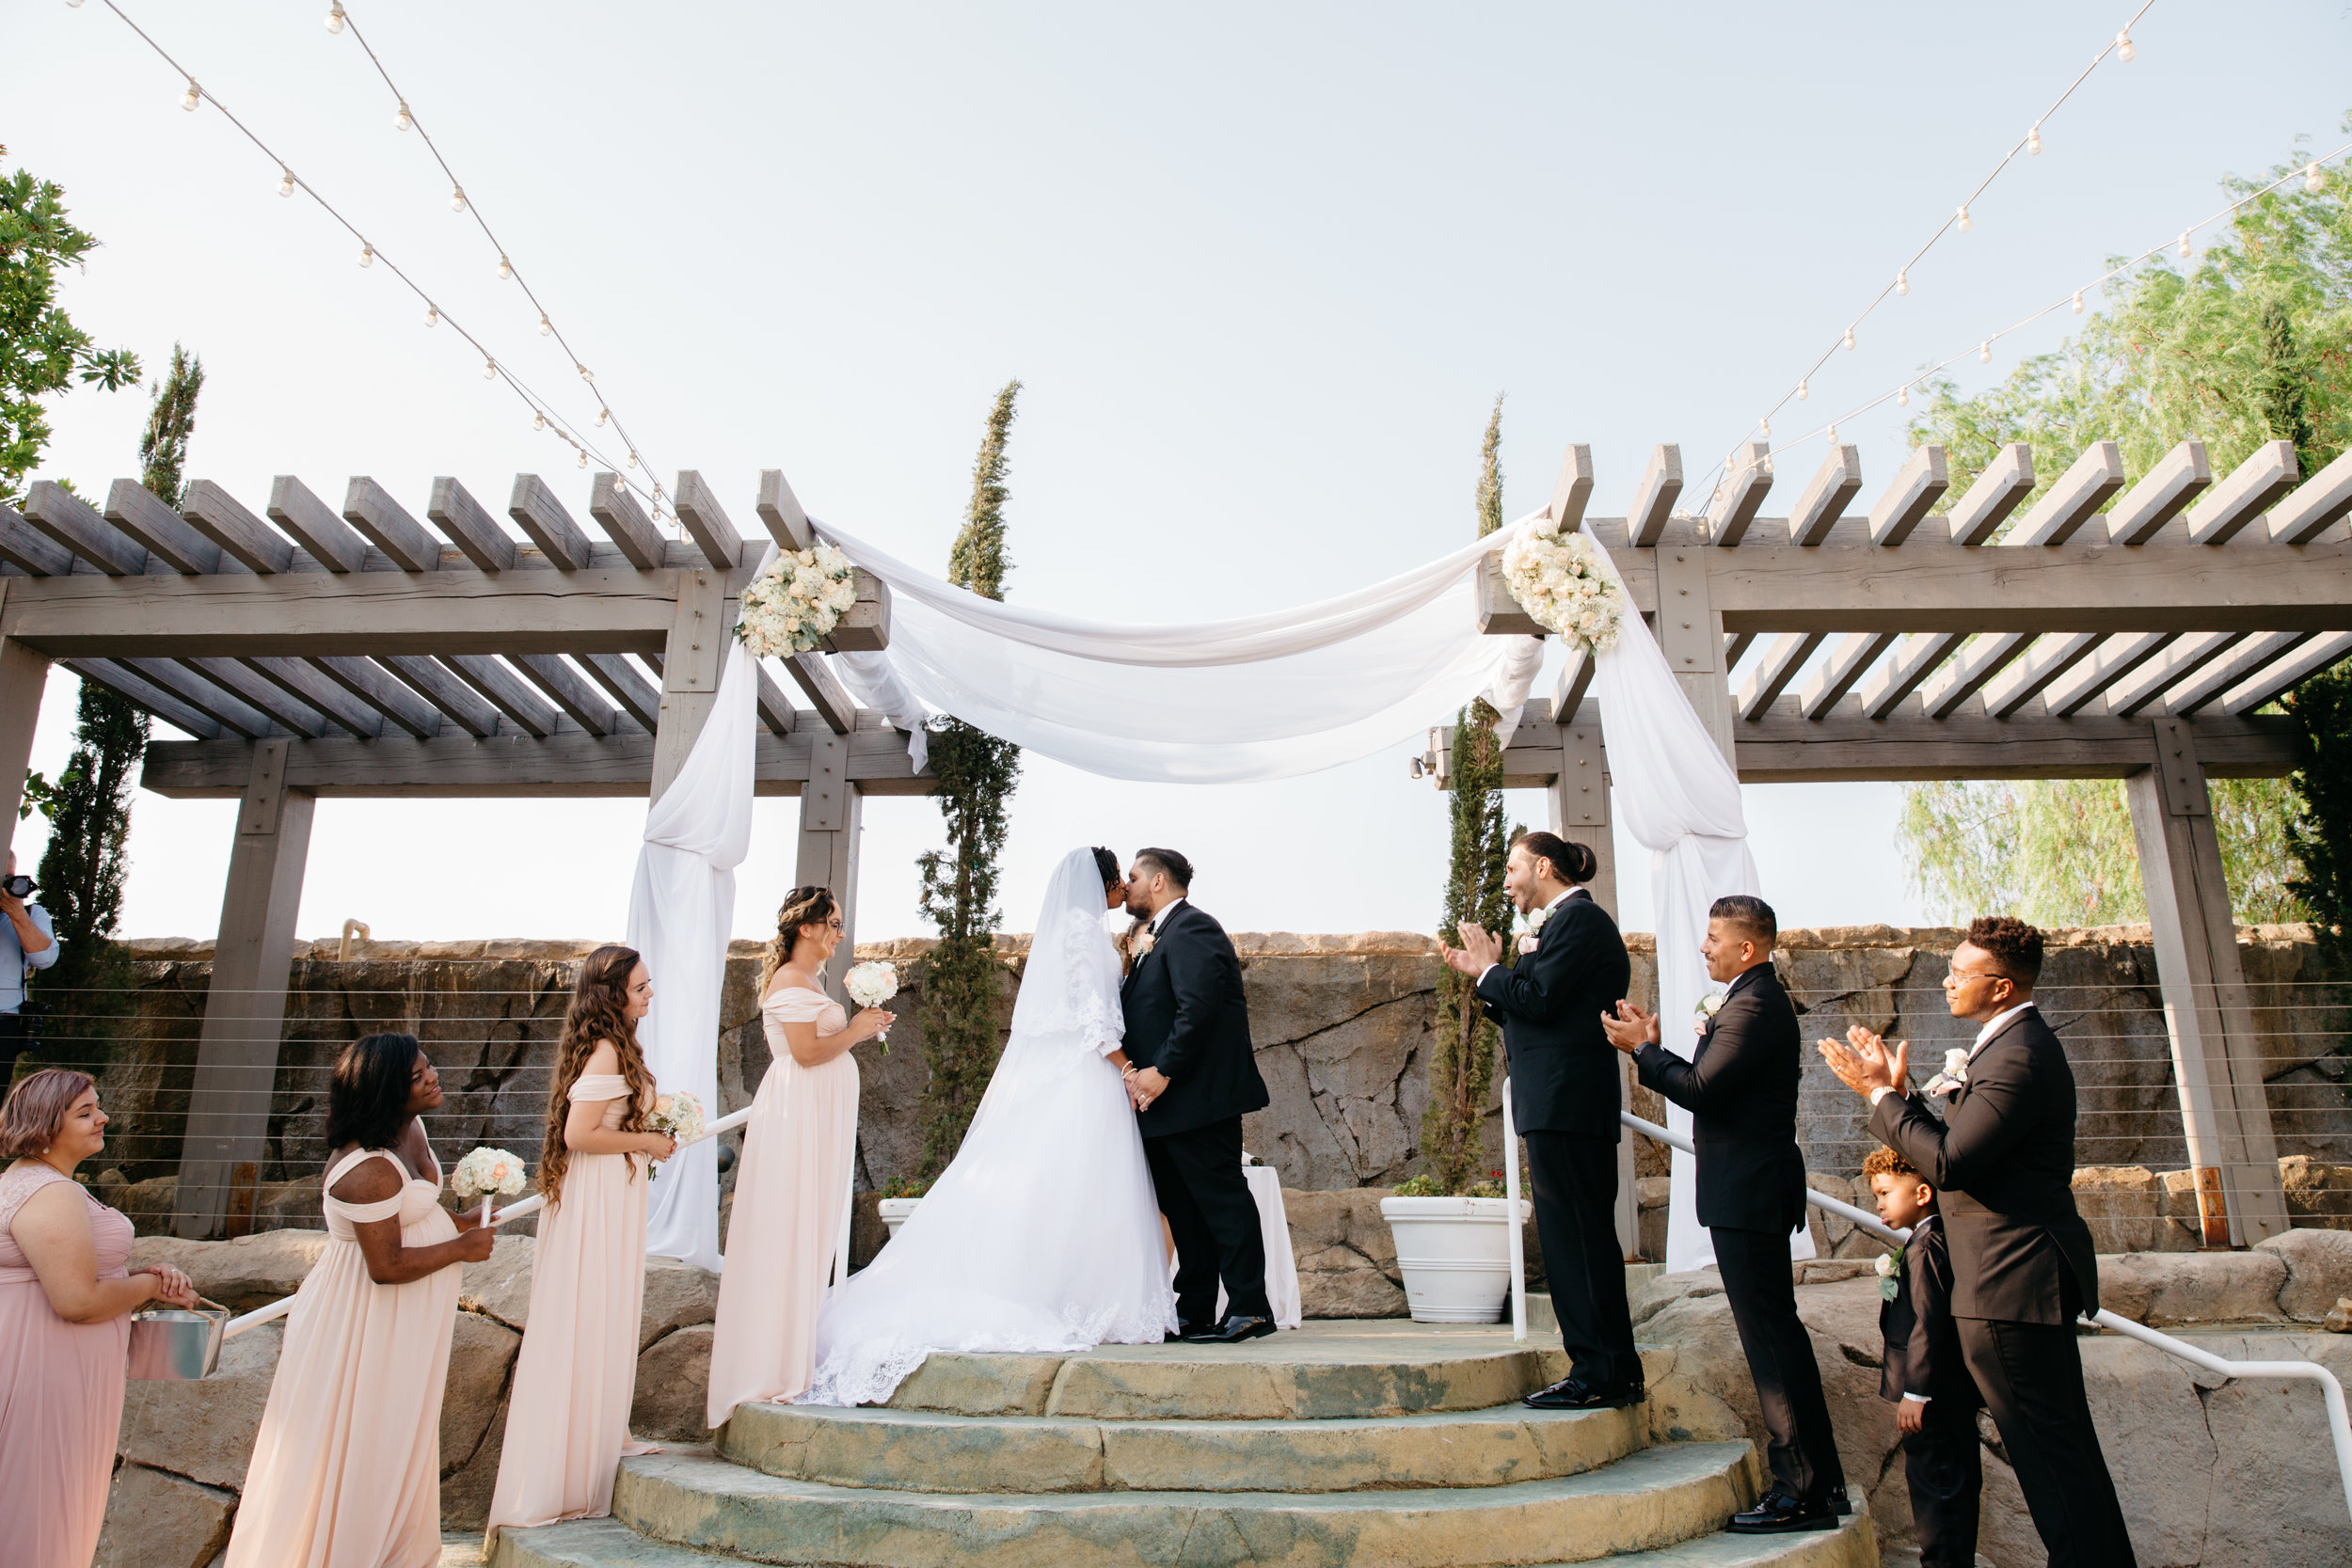 The Vineyard Wedding Jenna Bells and Laces Photography-19.jpg